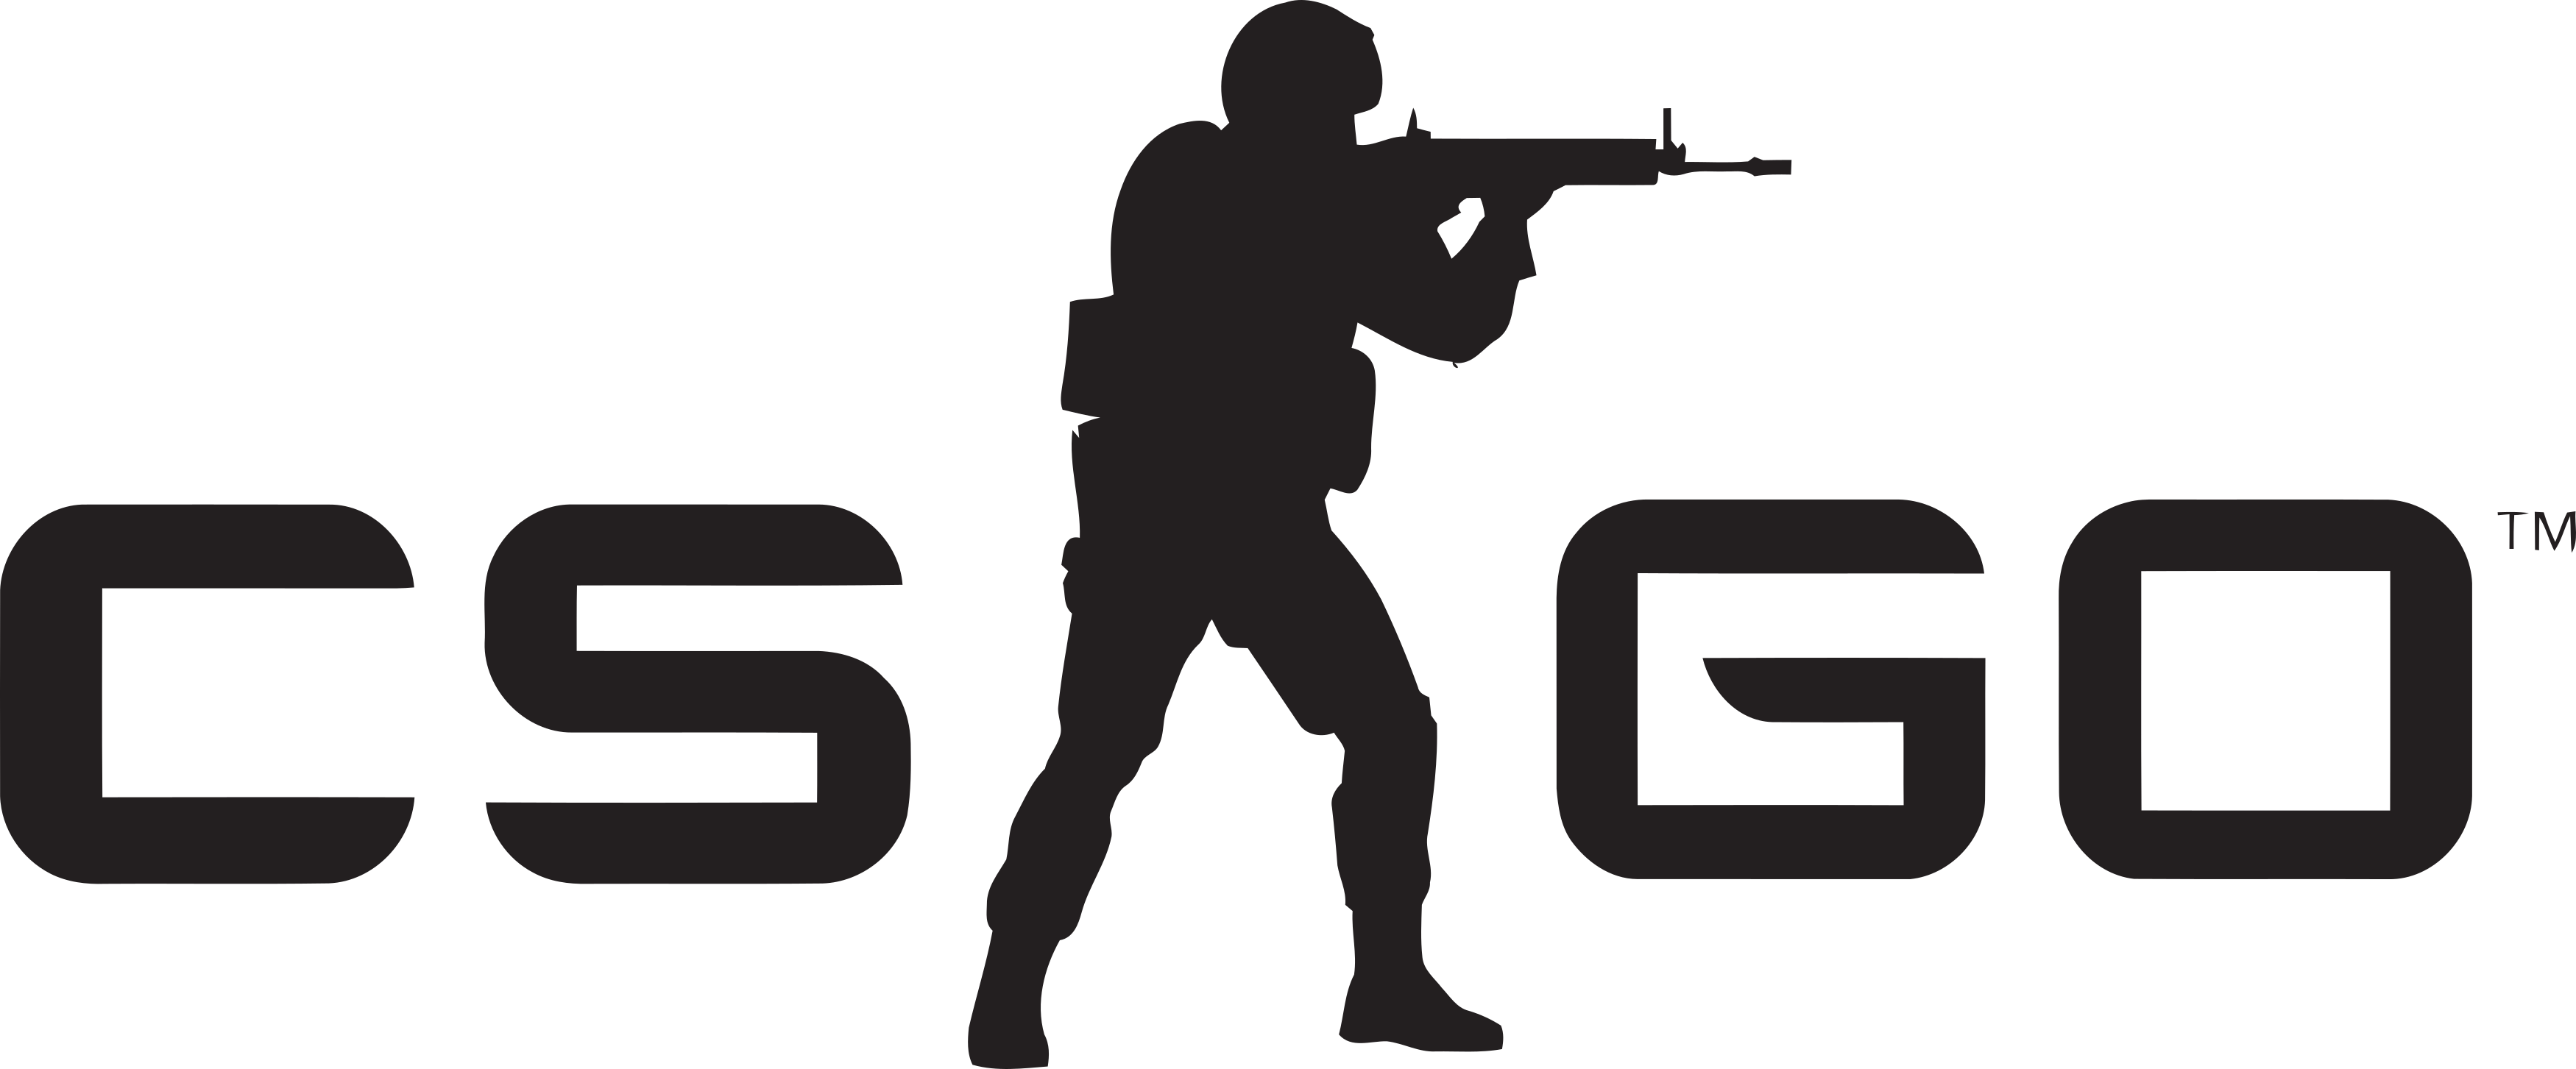 Cs go logo png. Counter strike global offensive